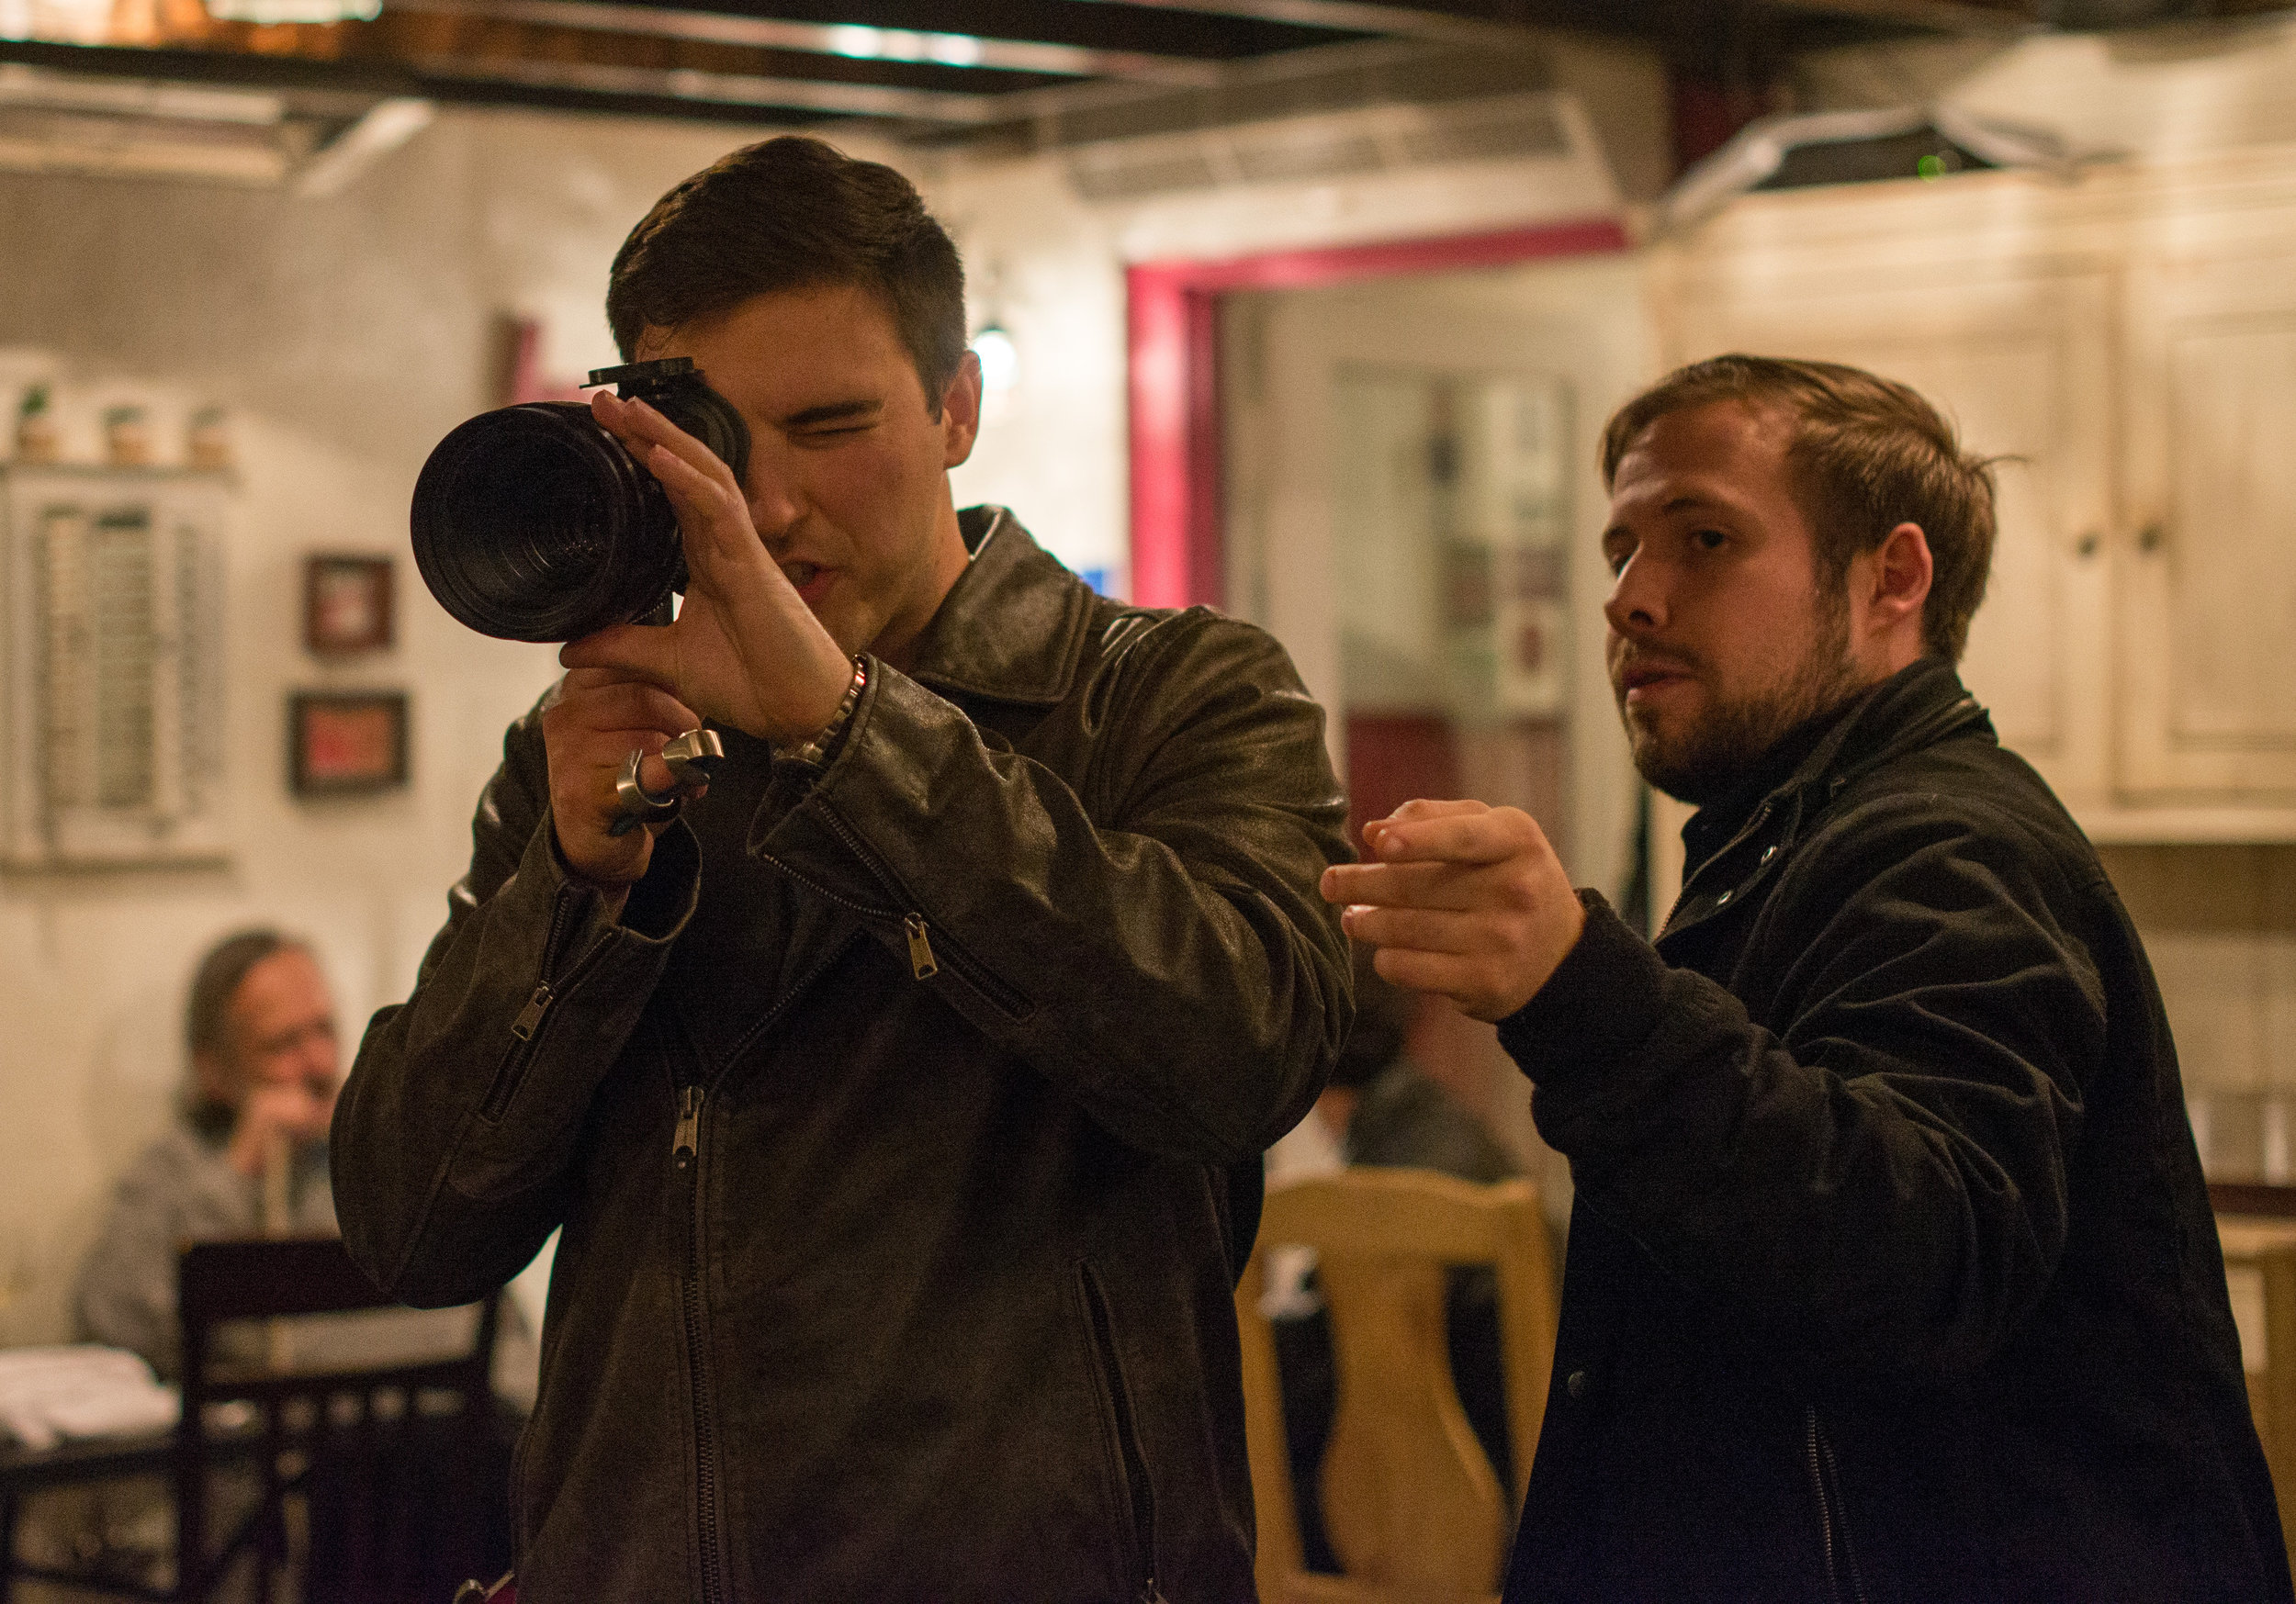 Director Brian White speaking with Director of Photography Cooper Ulrich setting up the restaurant shot on the viewfinder.